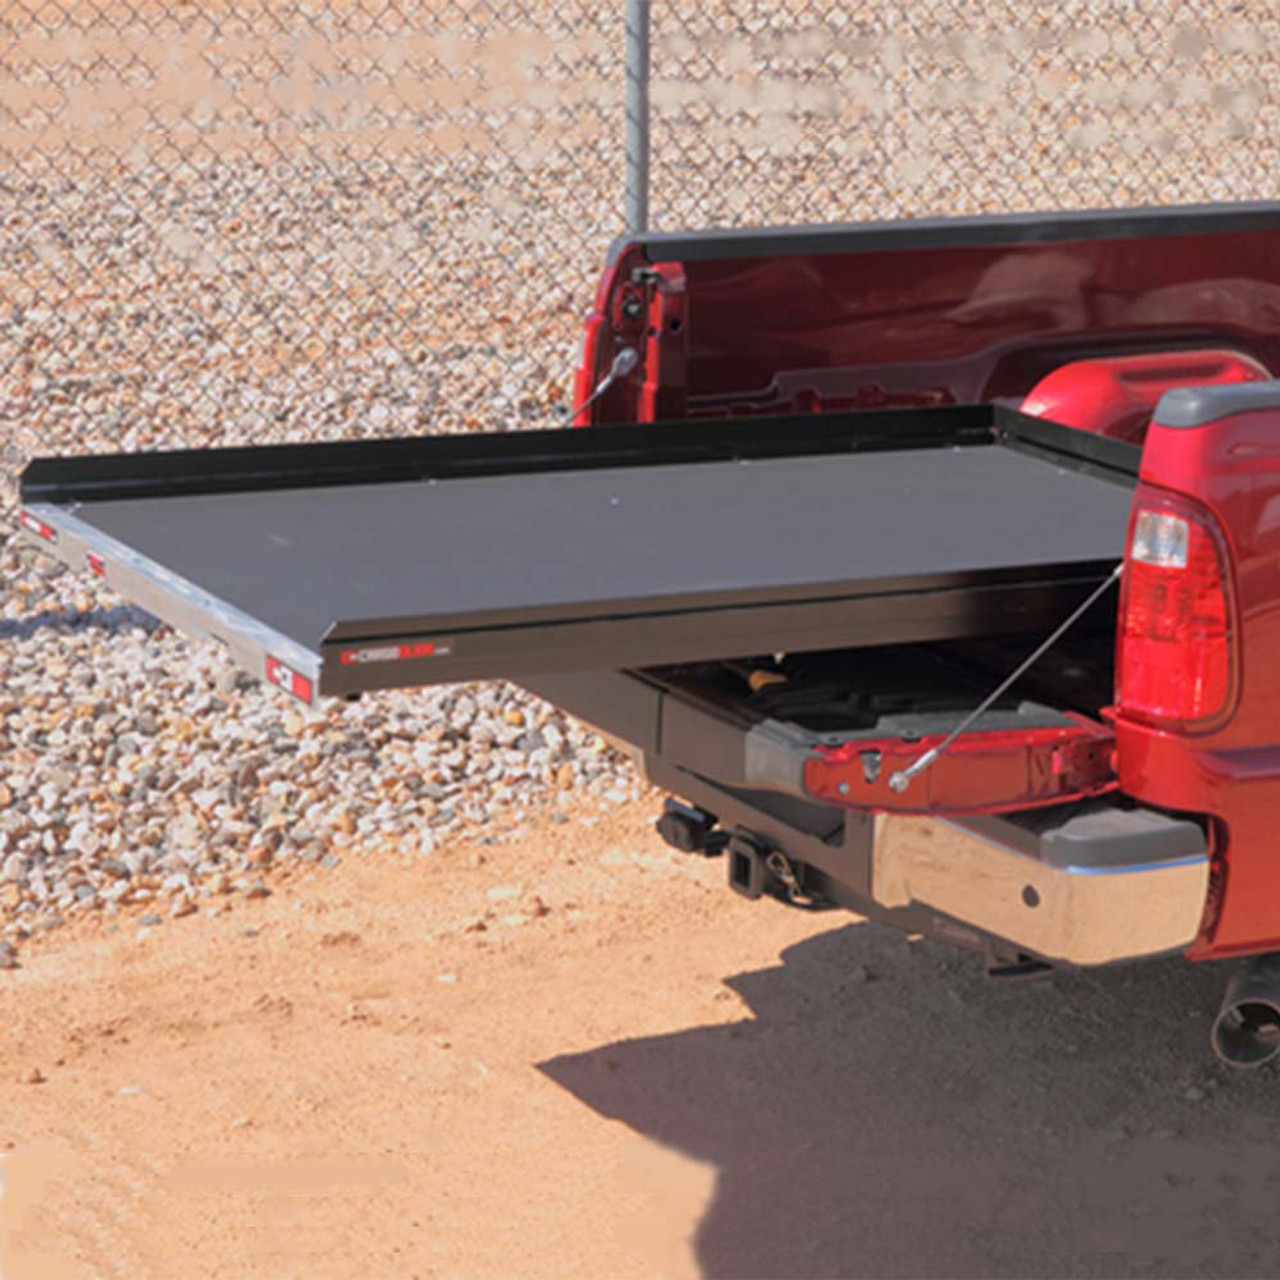 "Cargo-Glide CG1000 Ford Raptor, Steel Truck-Bed Slide and Extender, 1000 lb capacity, 65-75% Extension, 4"" side rails, 3.875"" deck height, includes installation kit"